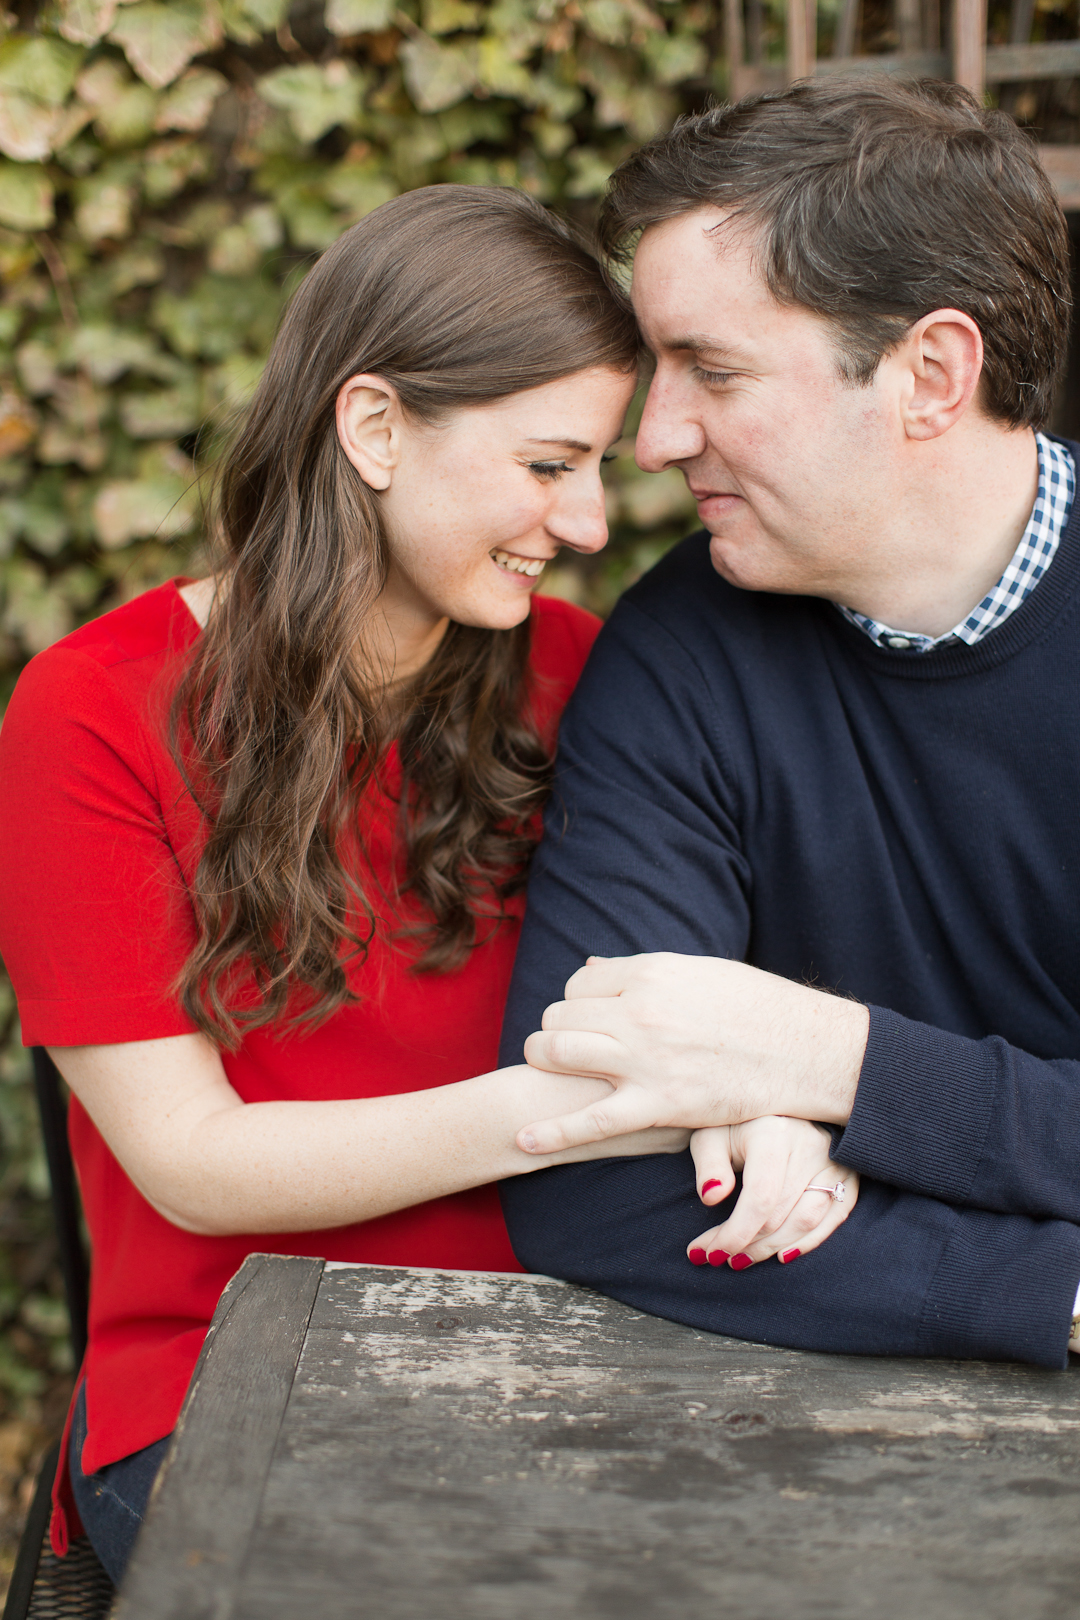 Melissa Kruse Photography - Tess & Brendan Engagement Photos-28.jpg